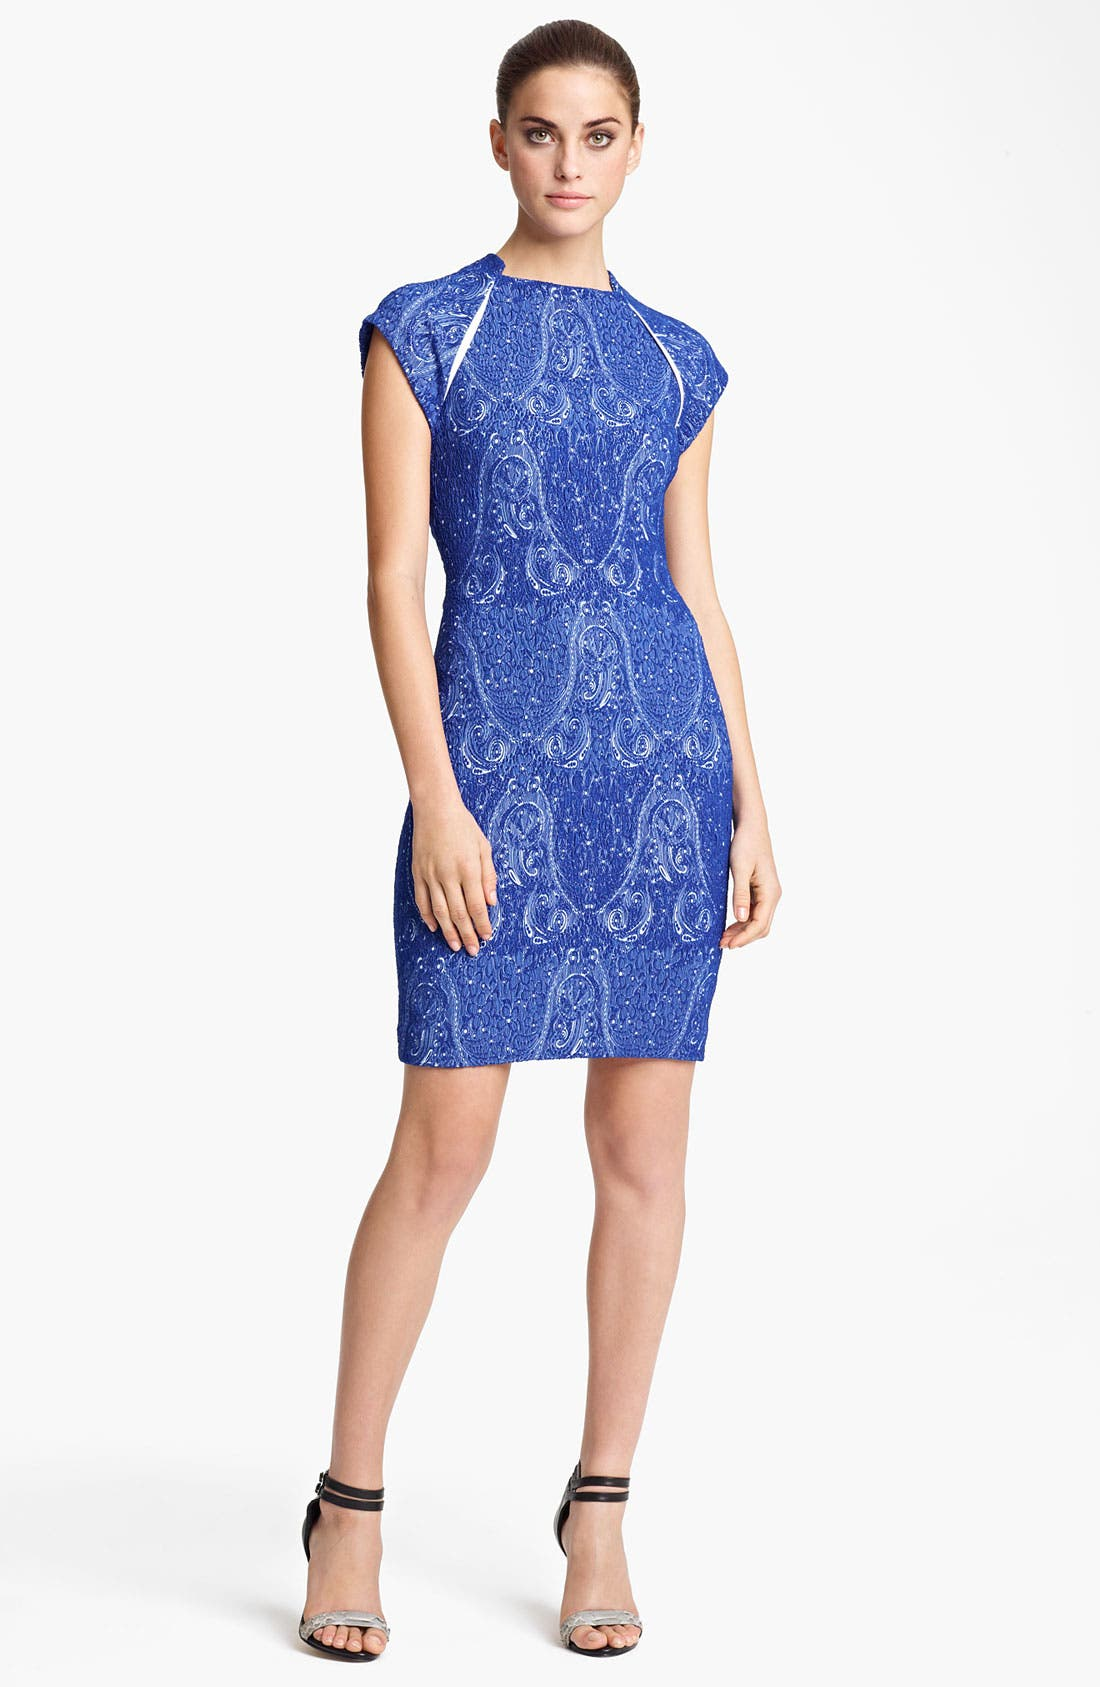 Alternate Image 1 Selected - Yigal Azrouël Stretch Jacquard Dress